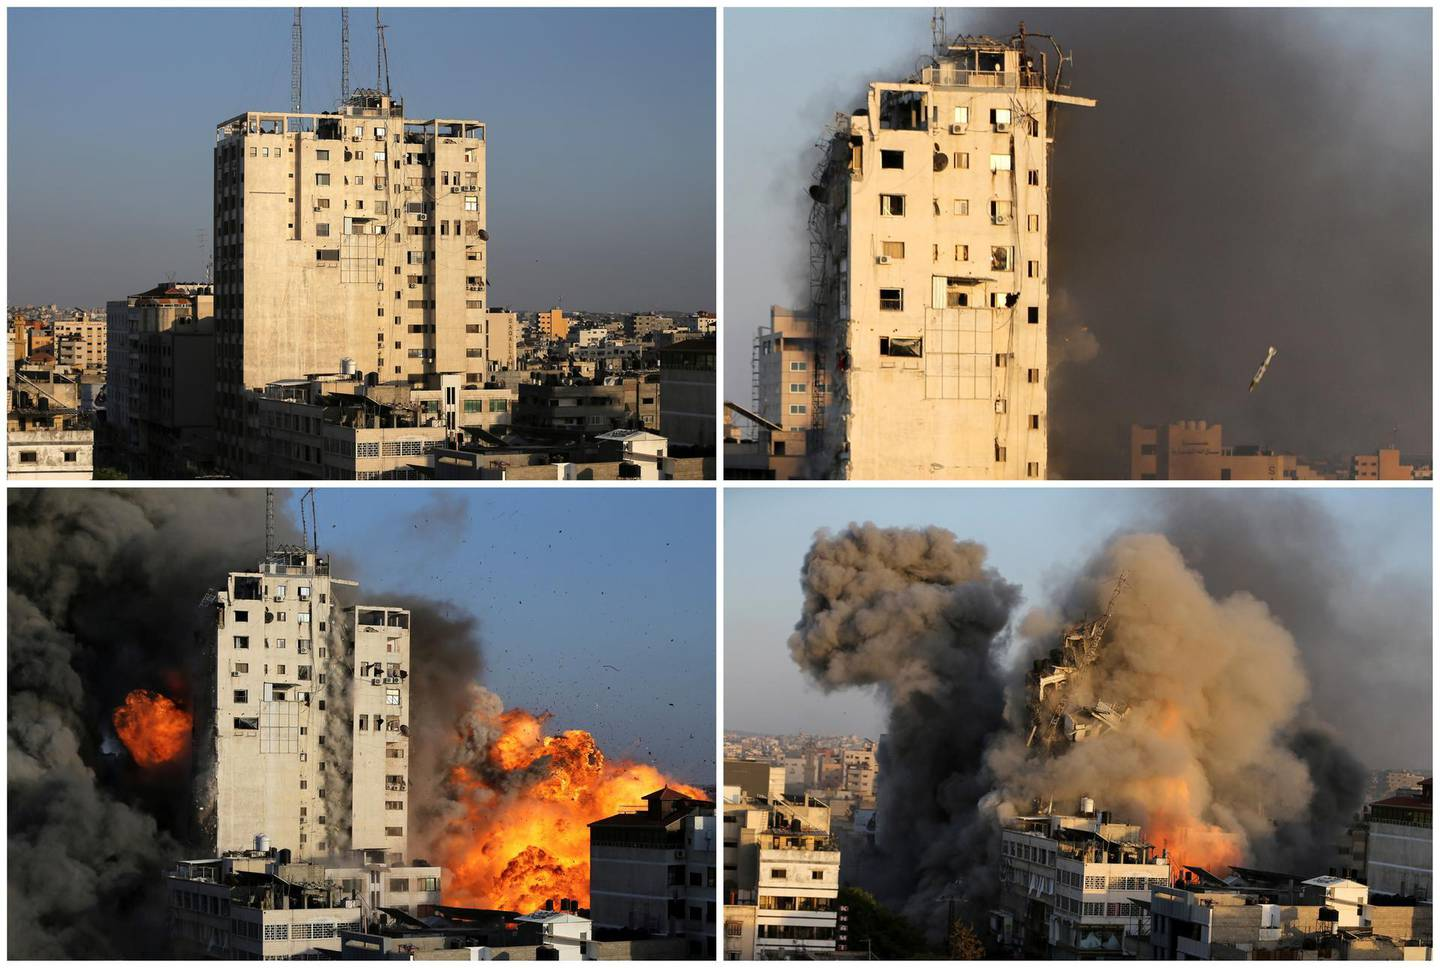 A combination picture shows a tower building before and after it was destroyed by Israeli air strikes amid a flare-up of Israeli-Palestinian violence, in Gaza City, May 12, 2021. REUTERS/Ibraheem Abu Mustafa     TPX IMAGES OF THE DAY